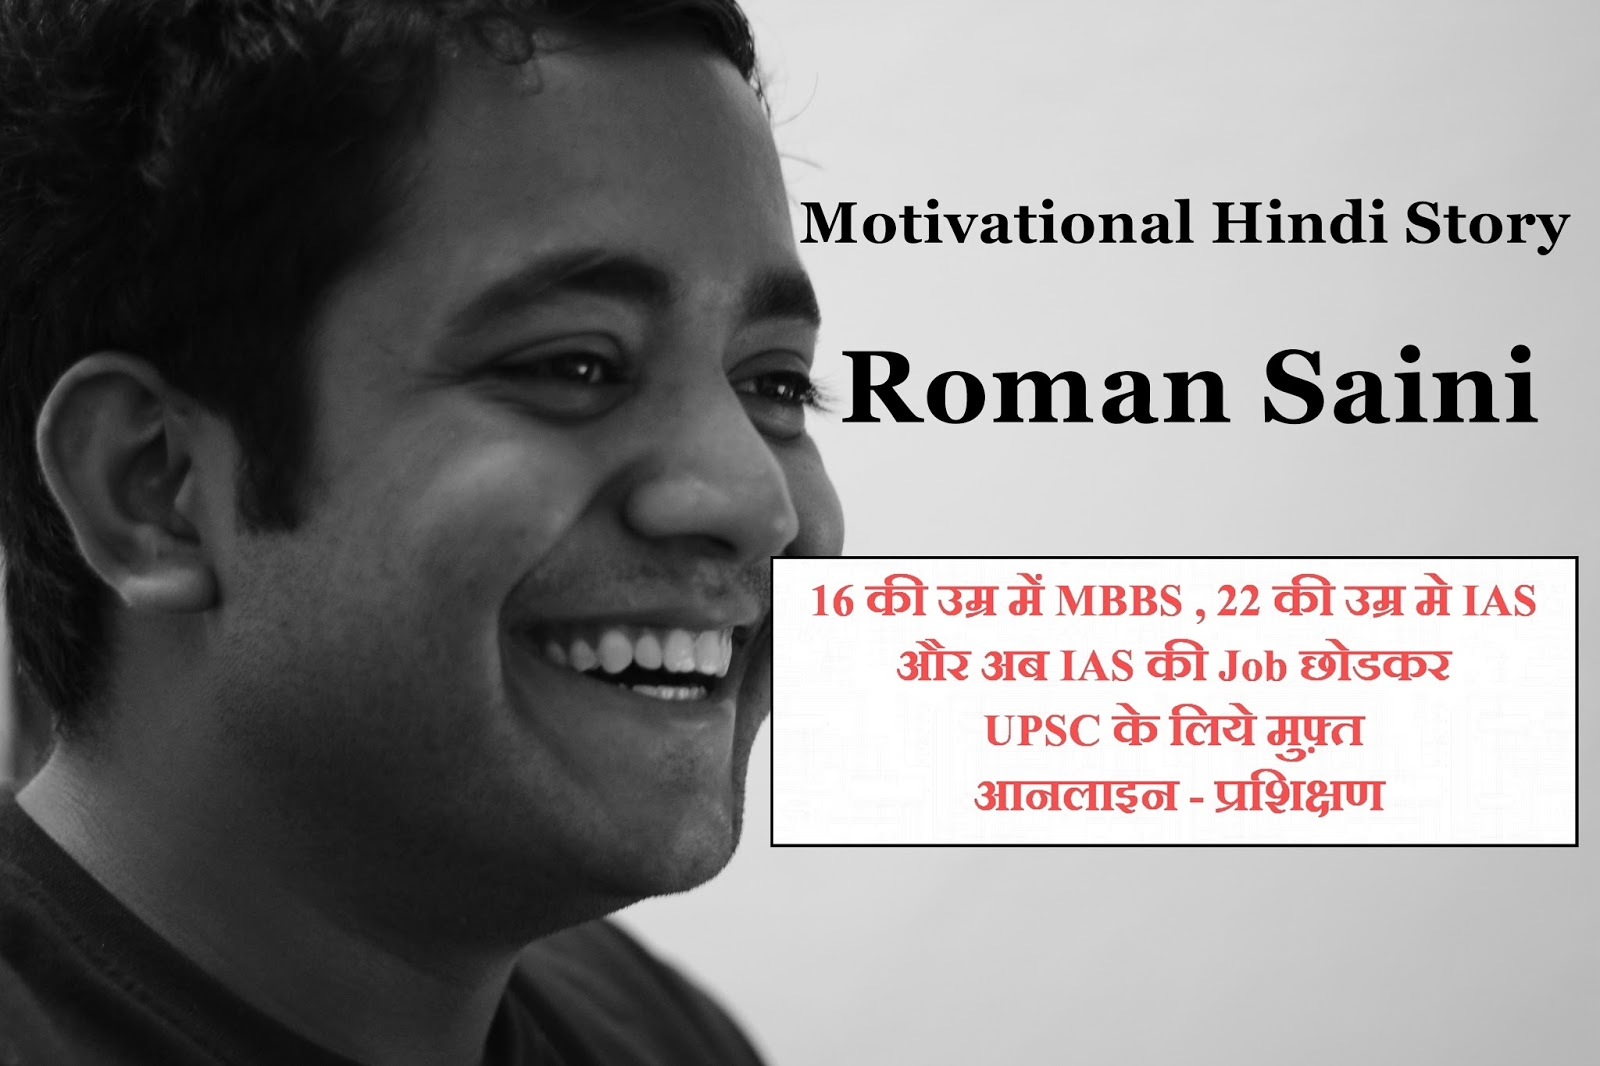 Motivational quotes for students exams in hindi